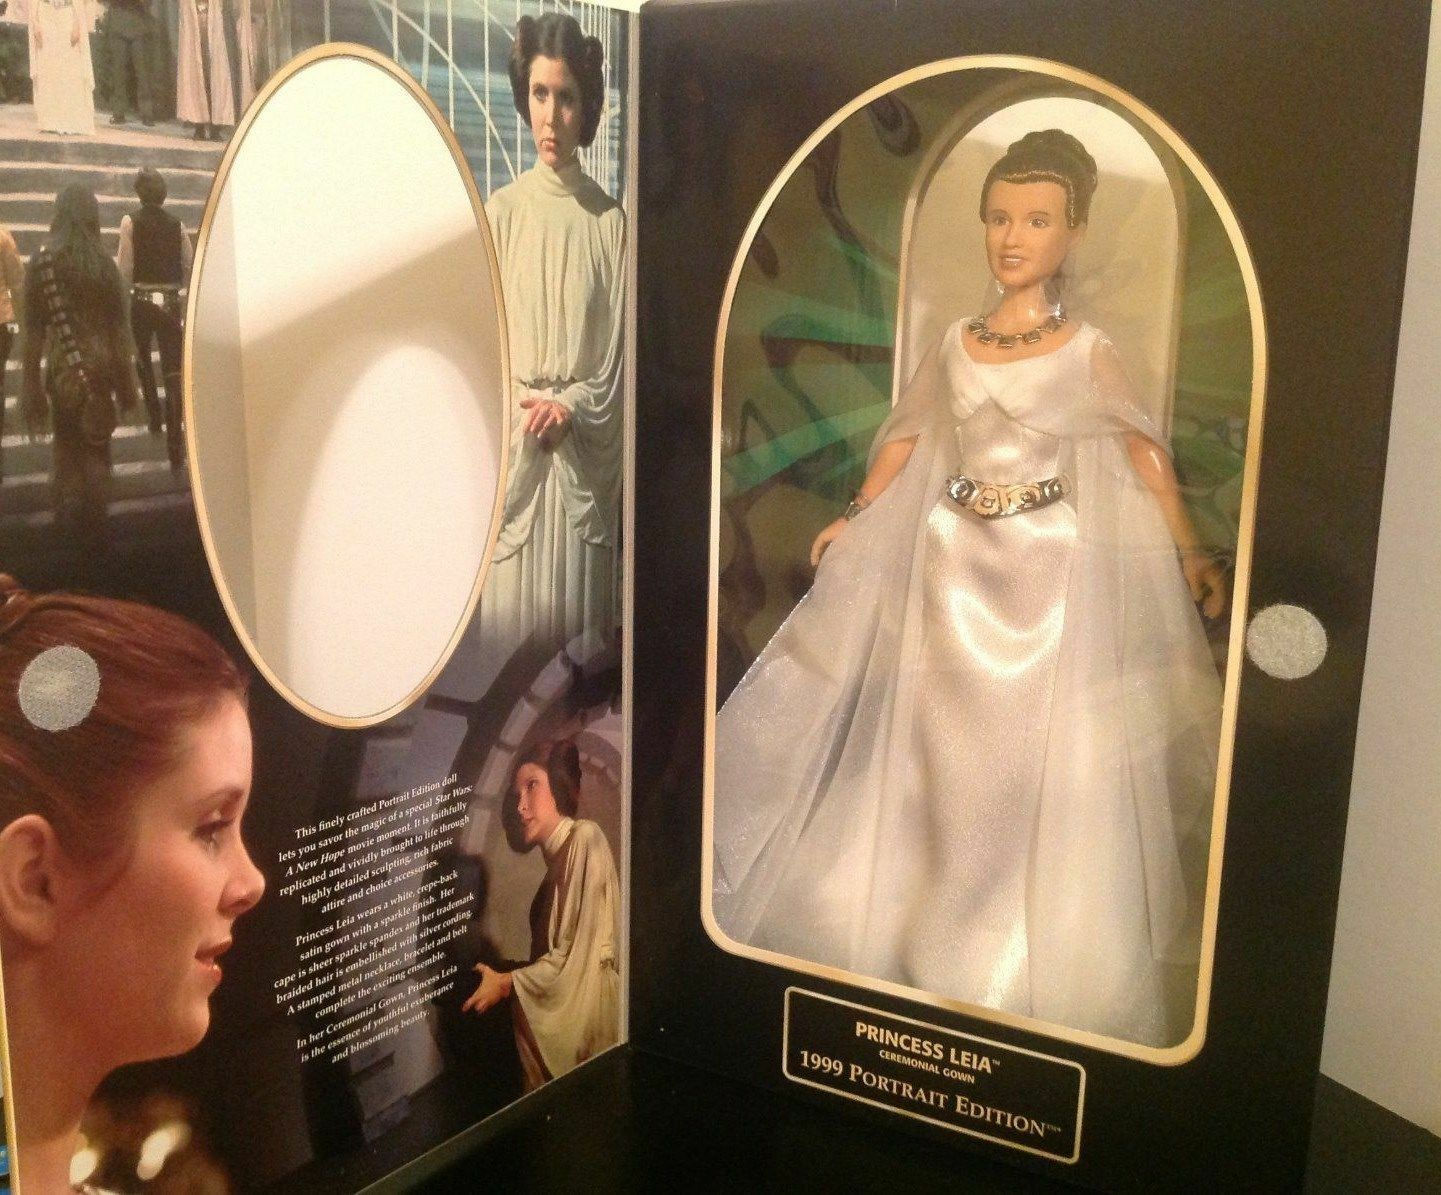 Hasbro Star Wars Princess Leia In Ceremonial Gown 1999 Portrait Edition...